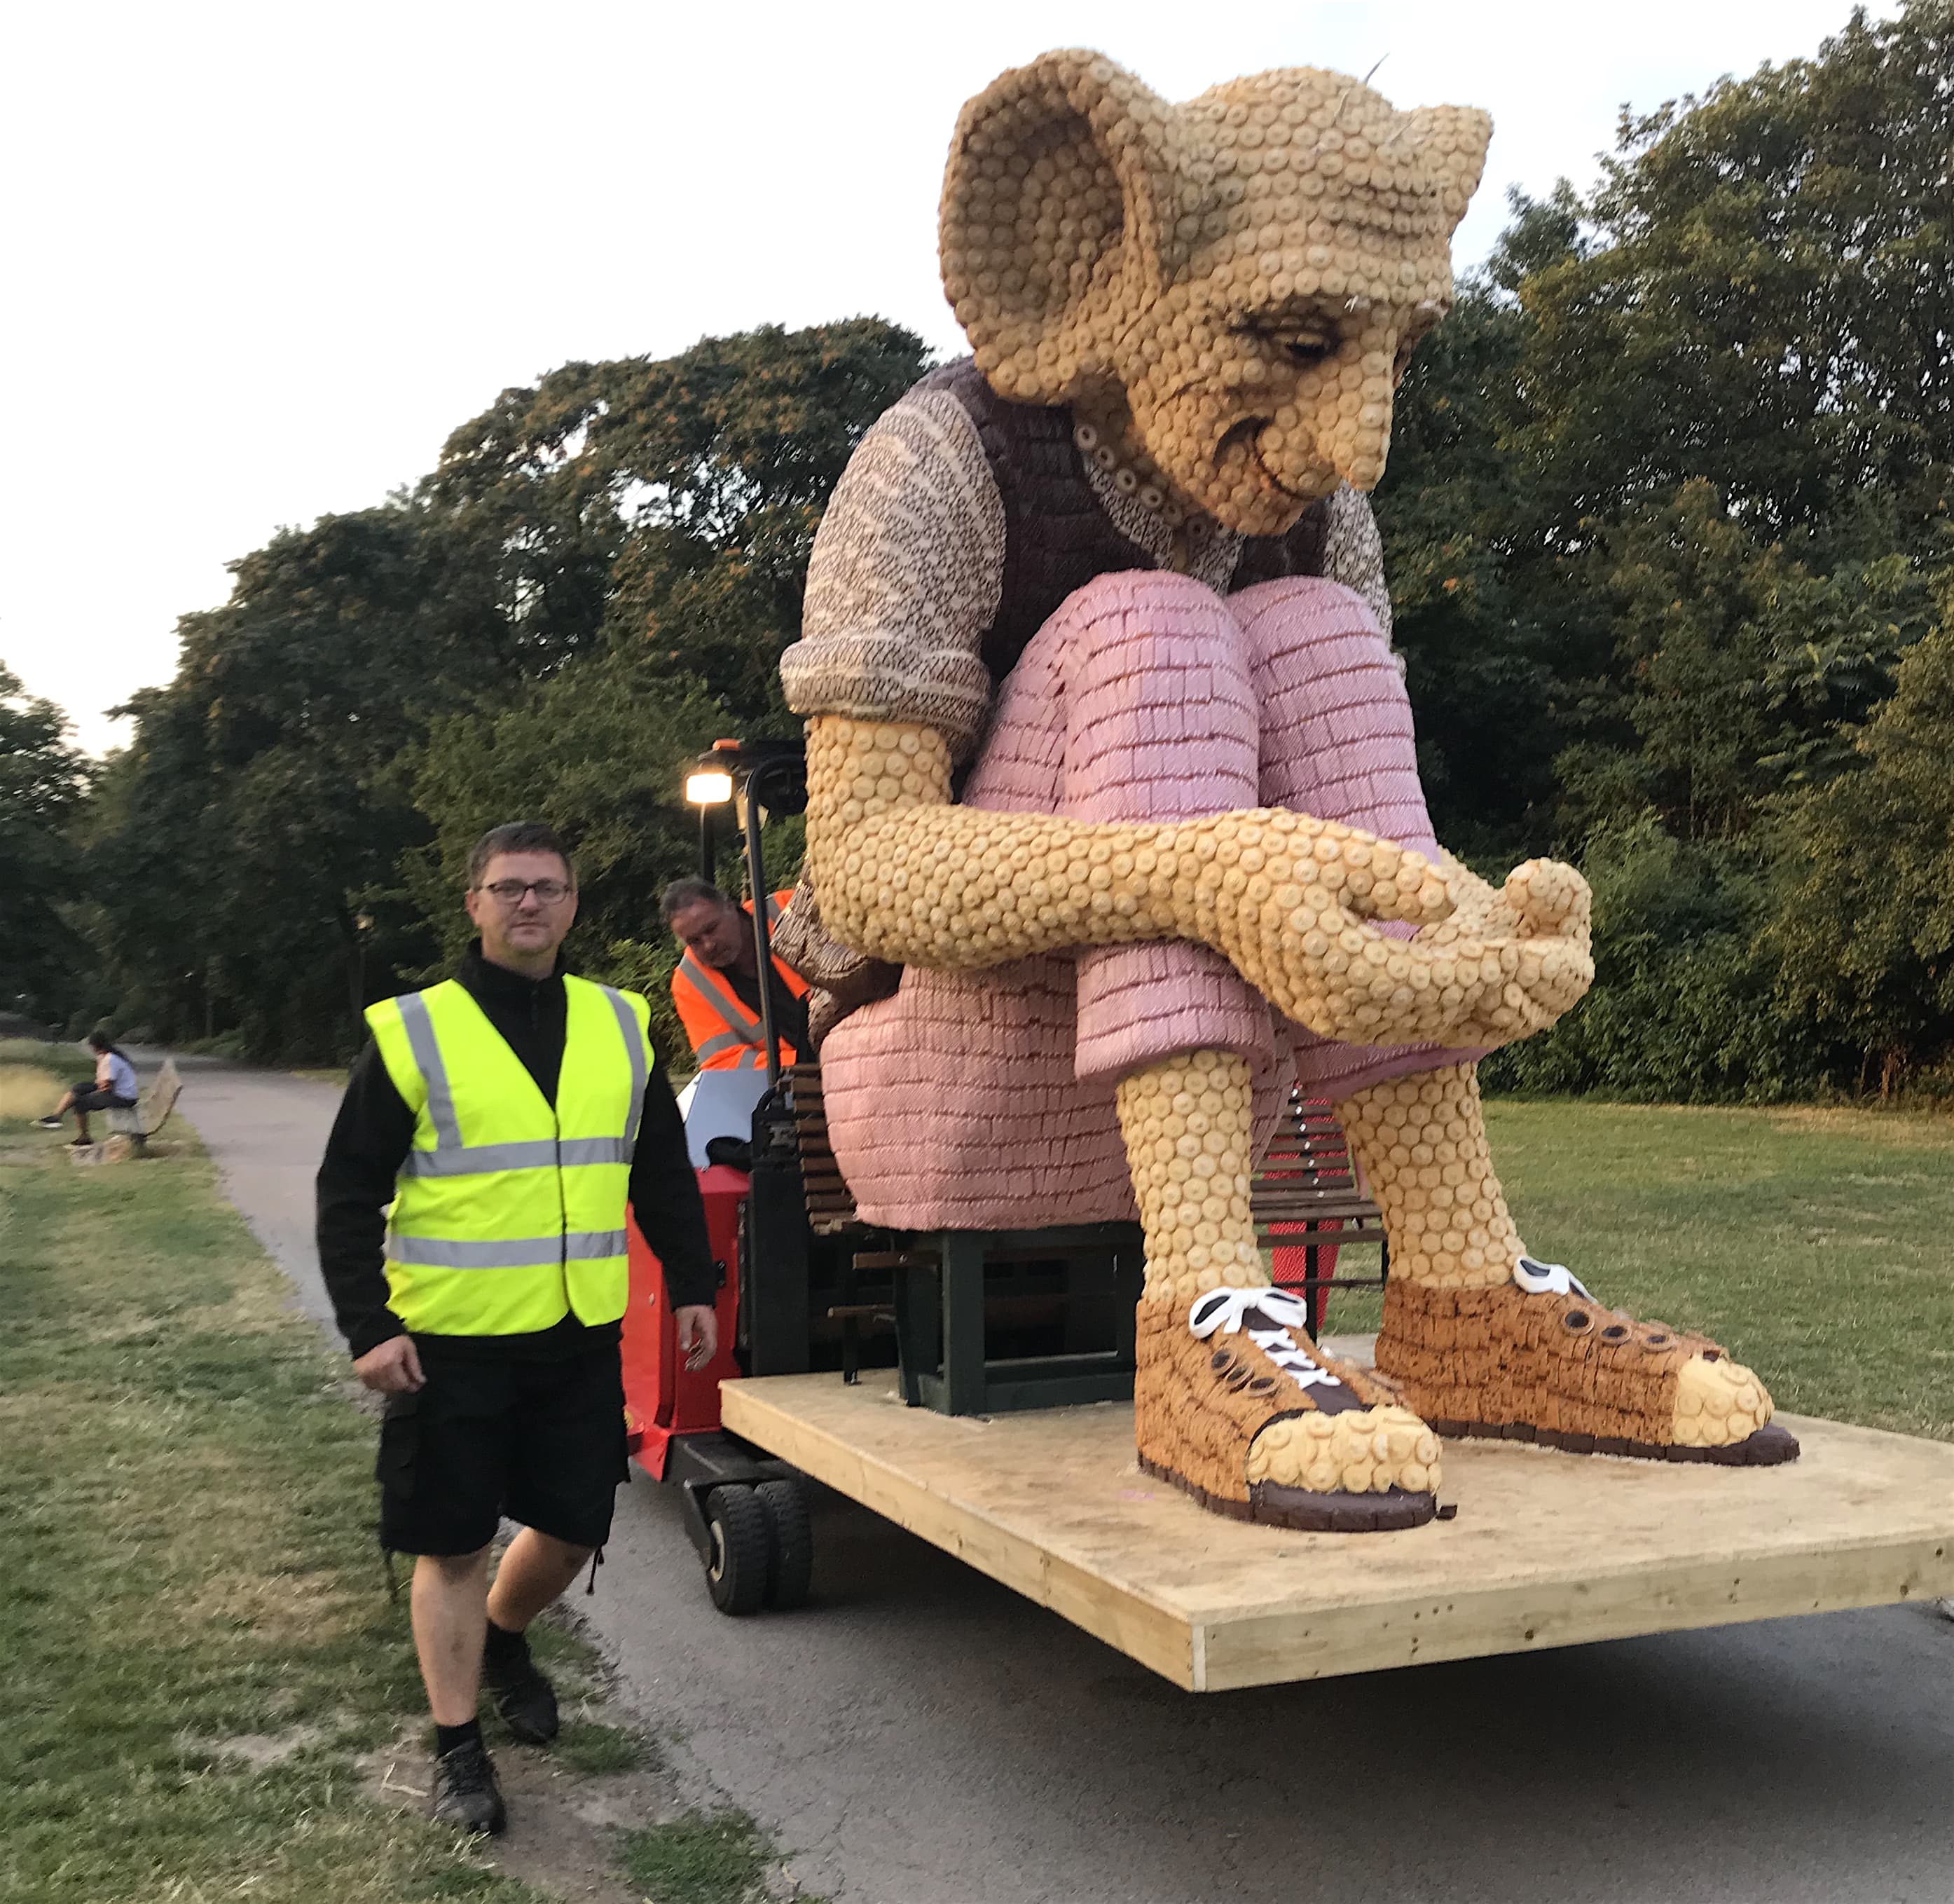 bfg kipling statue being forklifted up Primrose Hill London